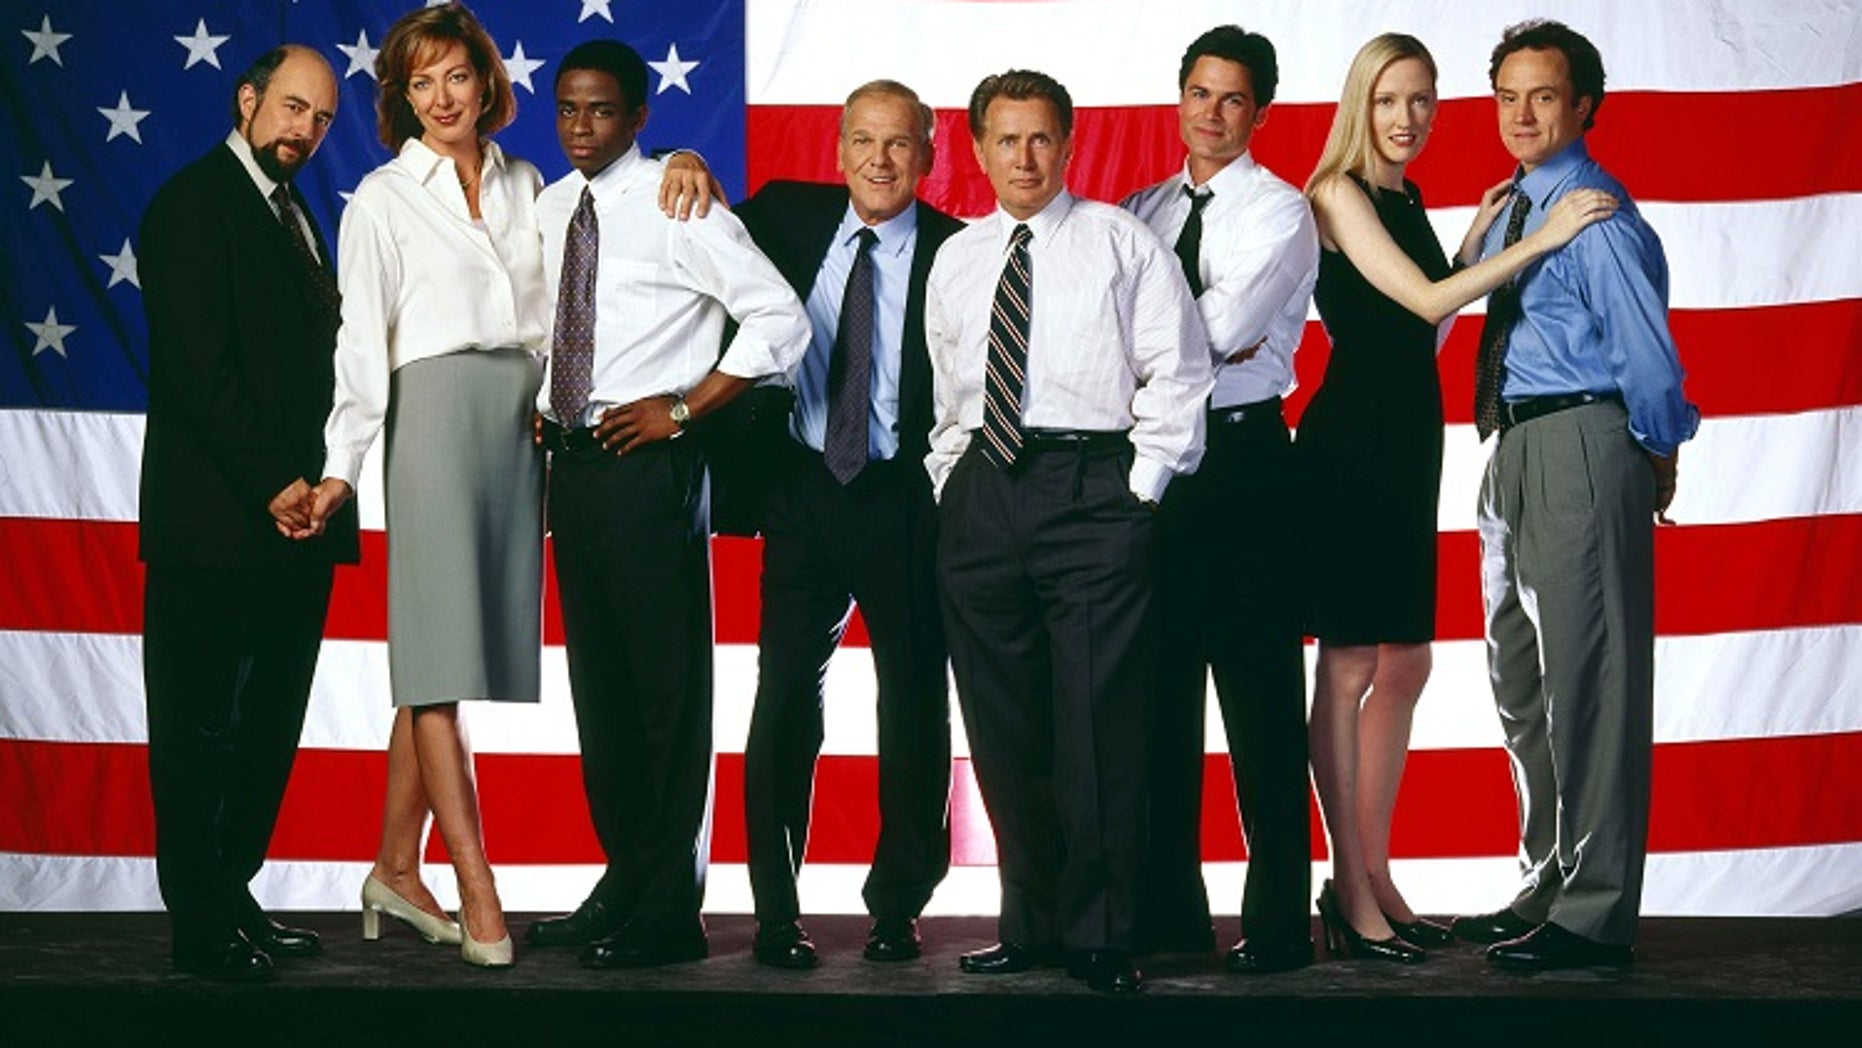 "The NBC television series ""The West Wing"" received an Emmy nomination for Best Drama Series, and received the second most nominations for any series, 18, as nominations were announced in Los Angeles July 12, 2001. Cast members shown (L-R) are Richard Schiff, Allison Janney, Dule Hill, John Spencer, Martin Sheen, Rob Lowe, Janel Moloney and Brad Whitford. The Emmy Awards will be presented in Los Angeles September 16. In addition, both Sheen and Lowe received nominations as Best Lead Actor in a Drama Series for their roles. - RTXKMN2"